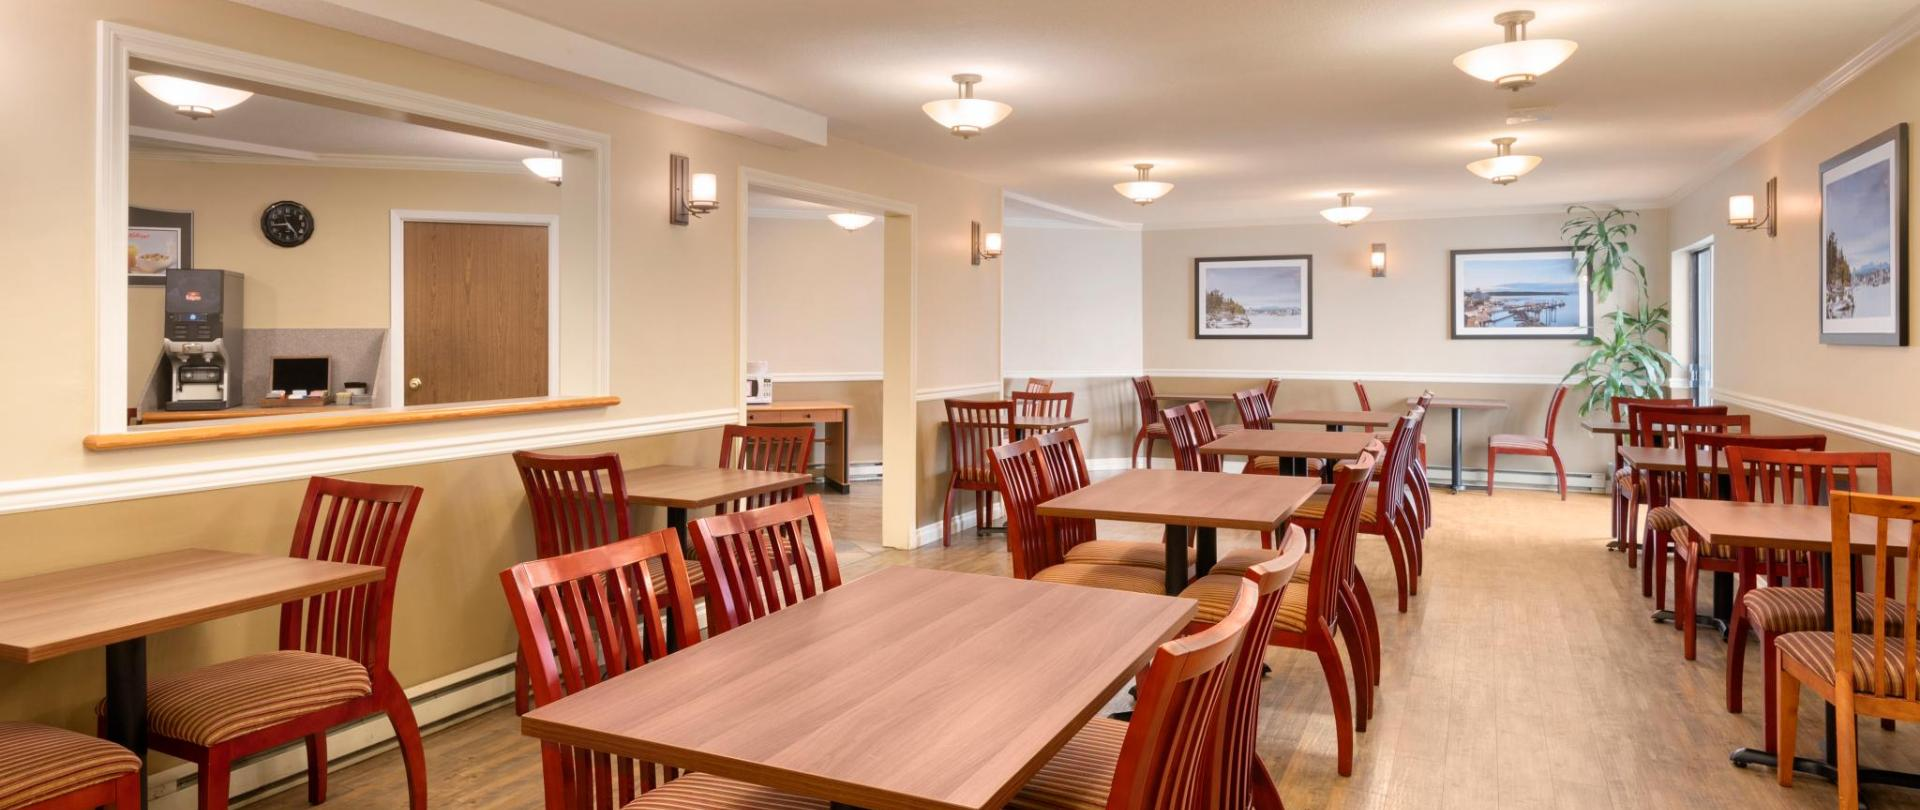 Days Inn Nanaimo - Breakfast Area - 1446694.jpg